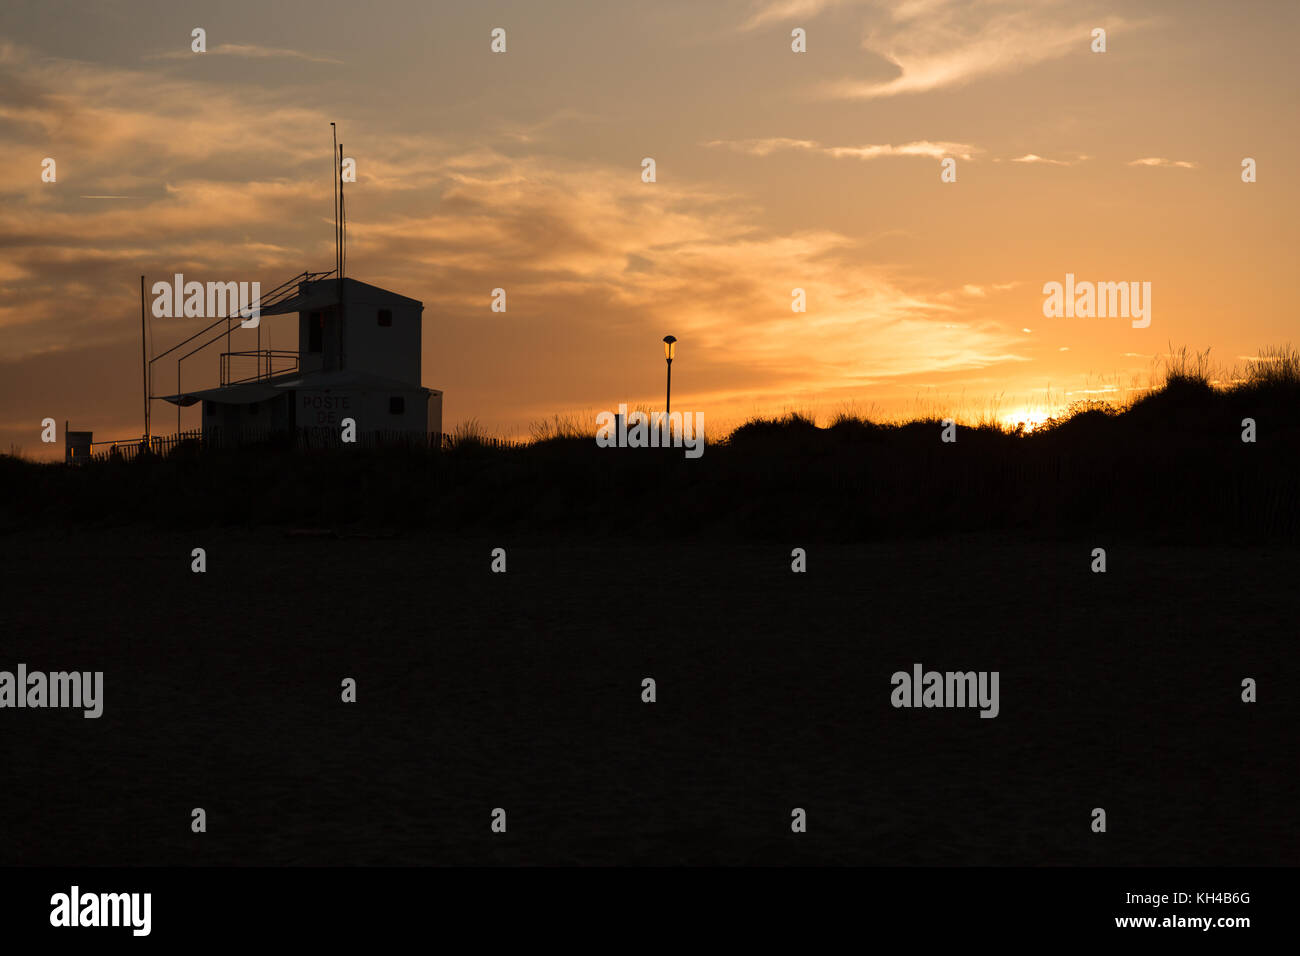 silhouette of the bay watch building during sunset - Stock Image